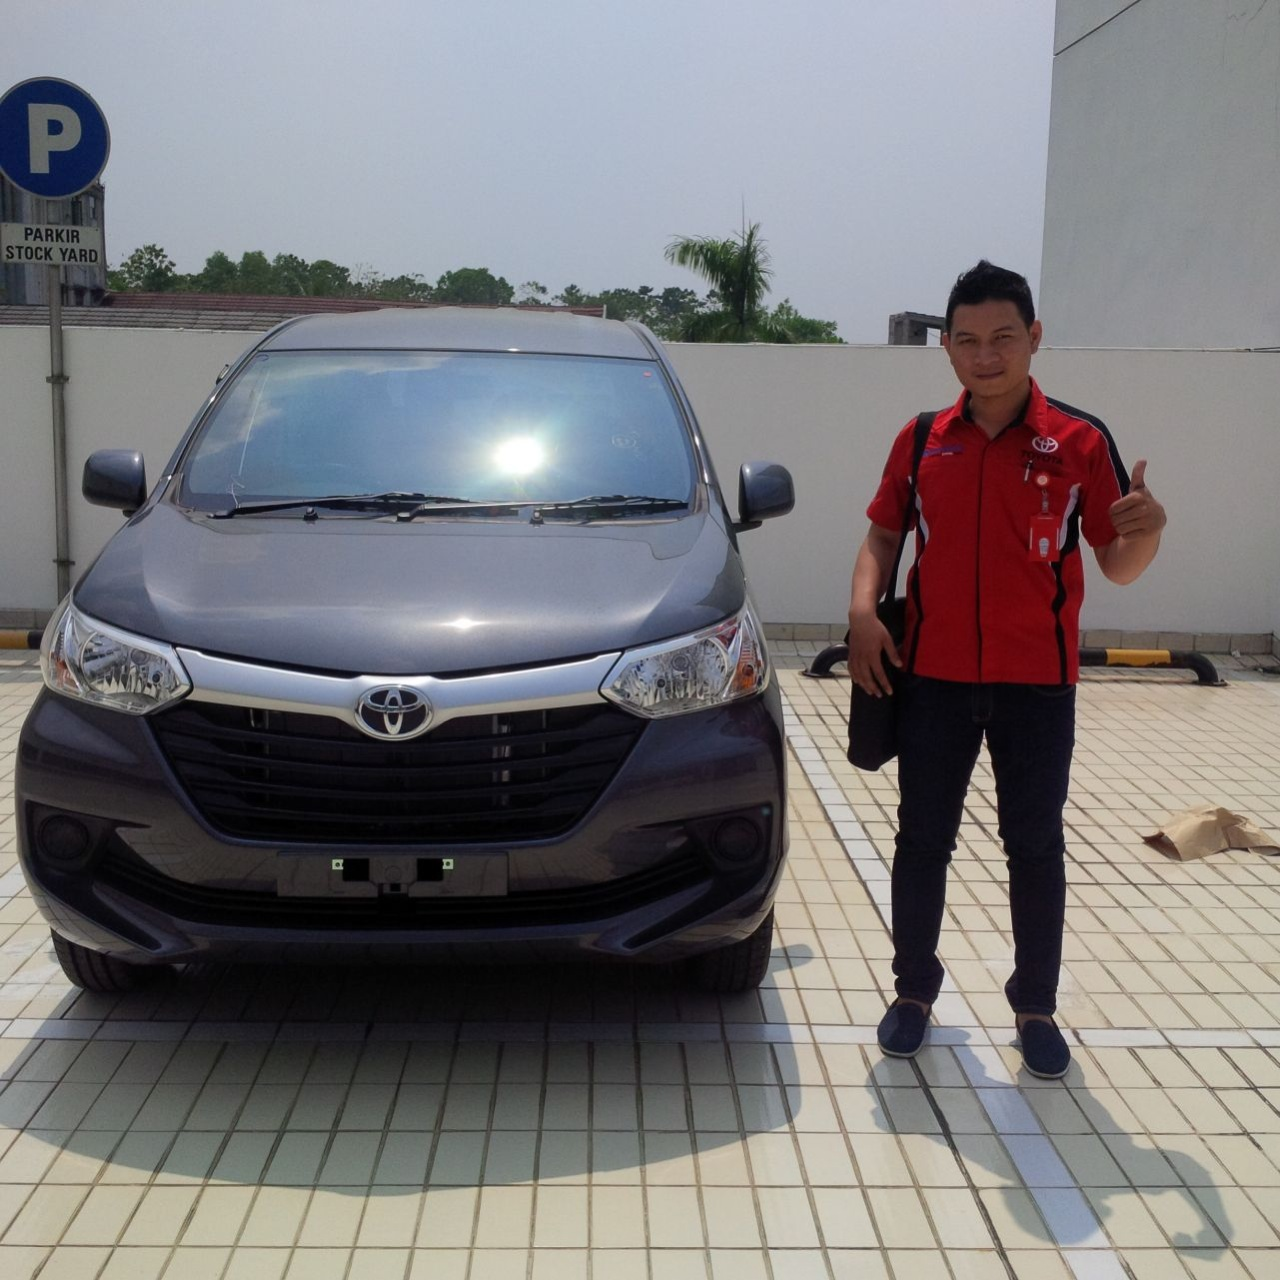 spoiler grand new avanza g 1.3 promo 2015 dp mulai 40jt an dealer